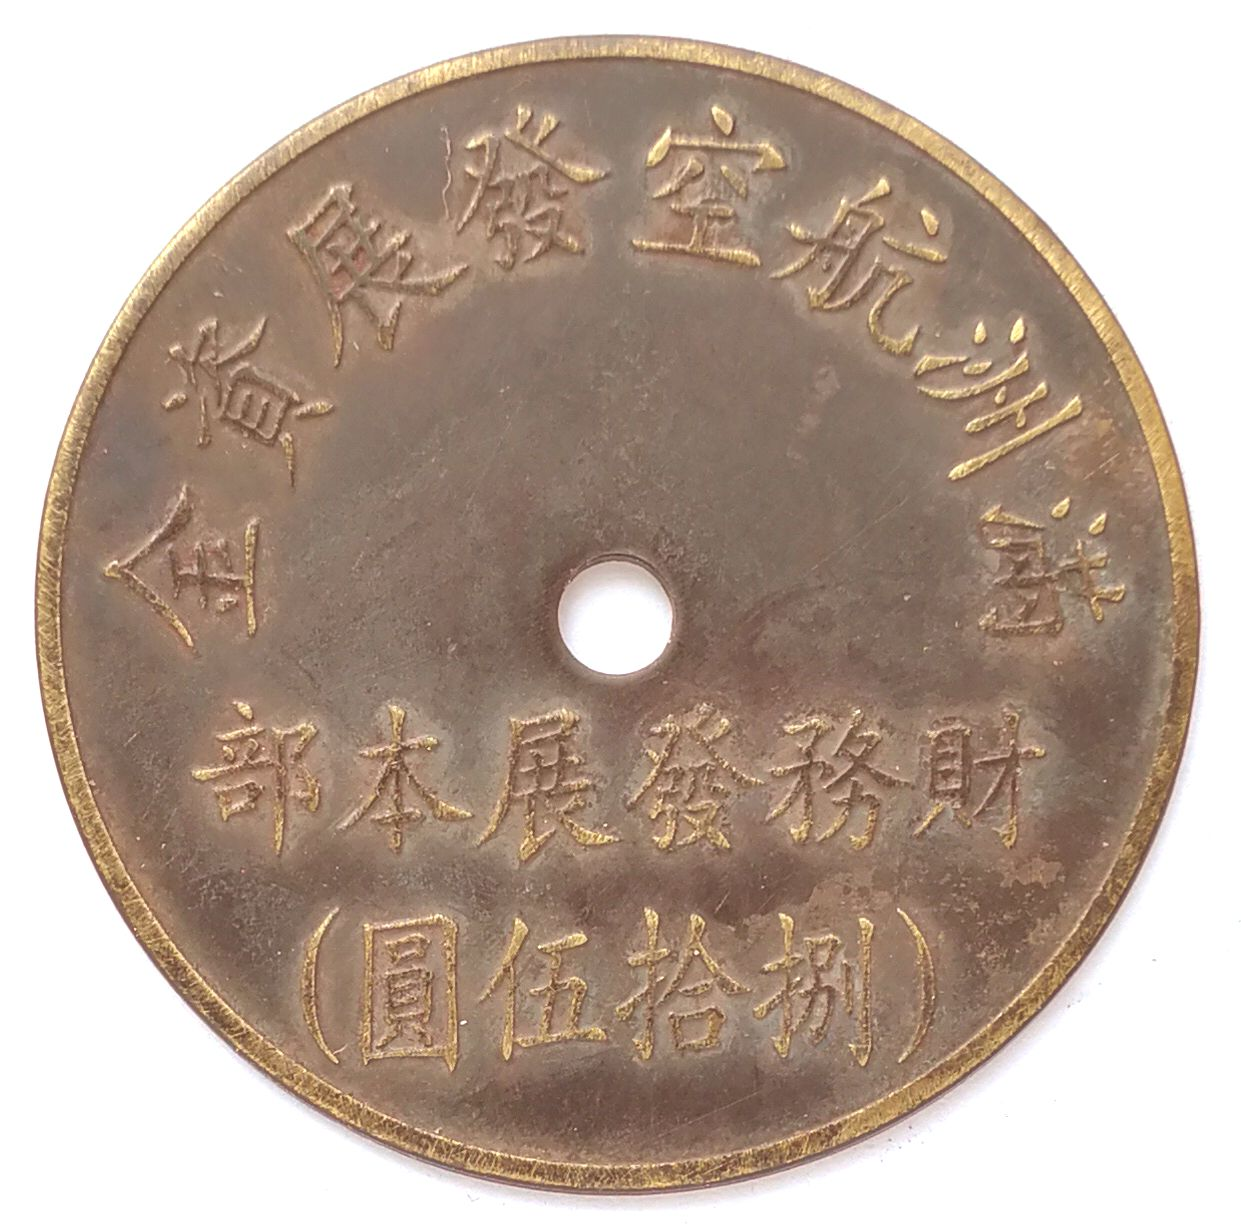 BT489, Manchukuo Aviation Development Fund, Central Bank 95 Yen Token, 1945